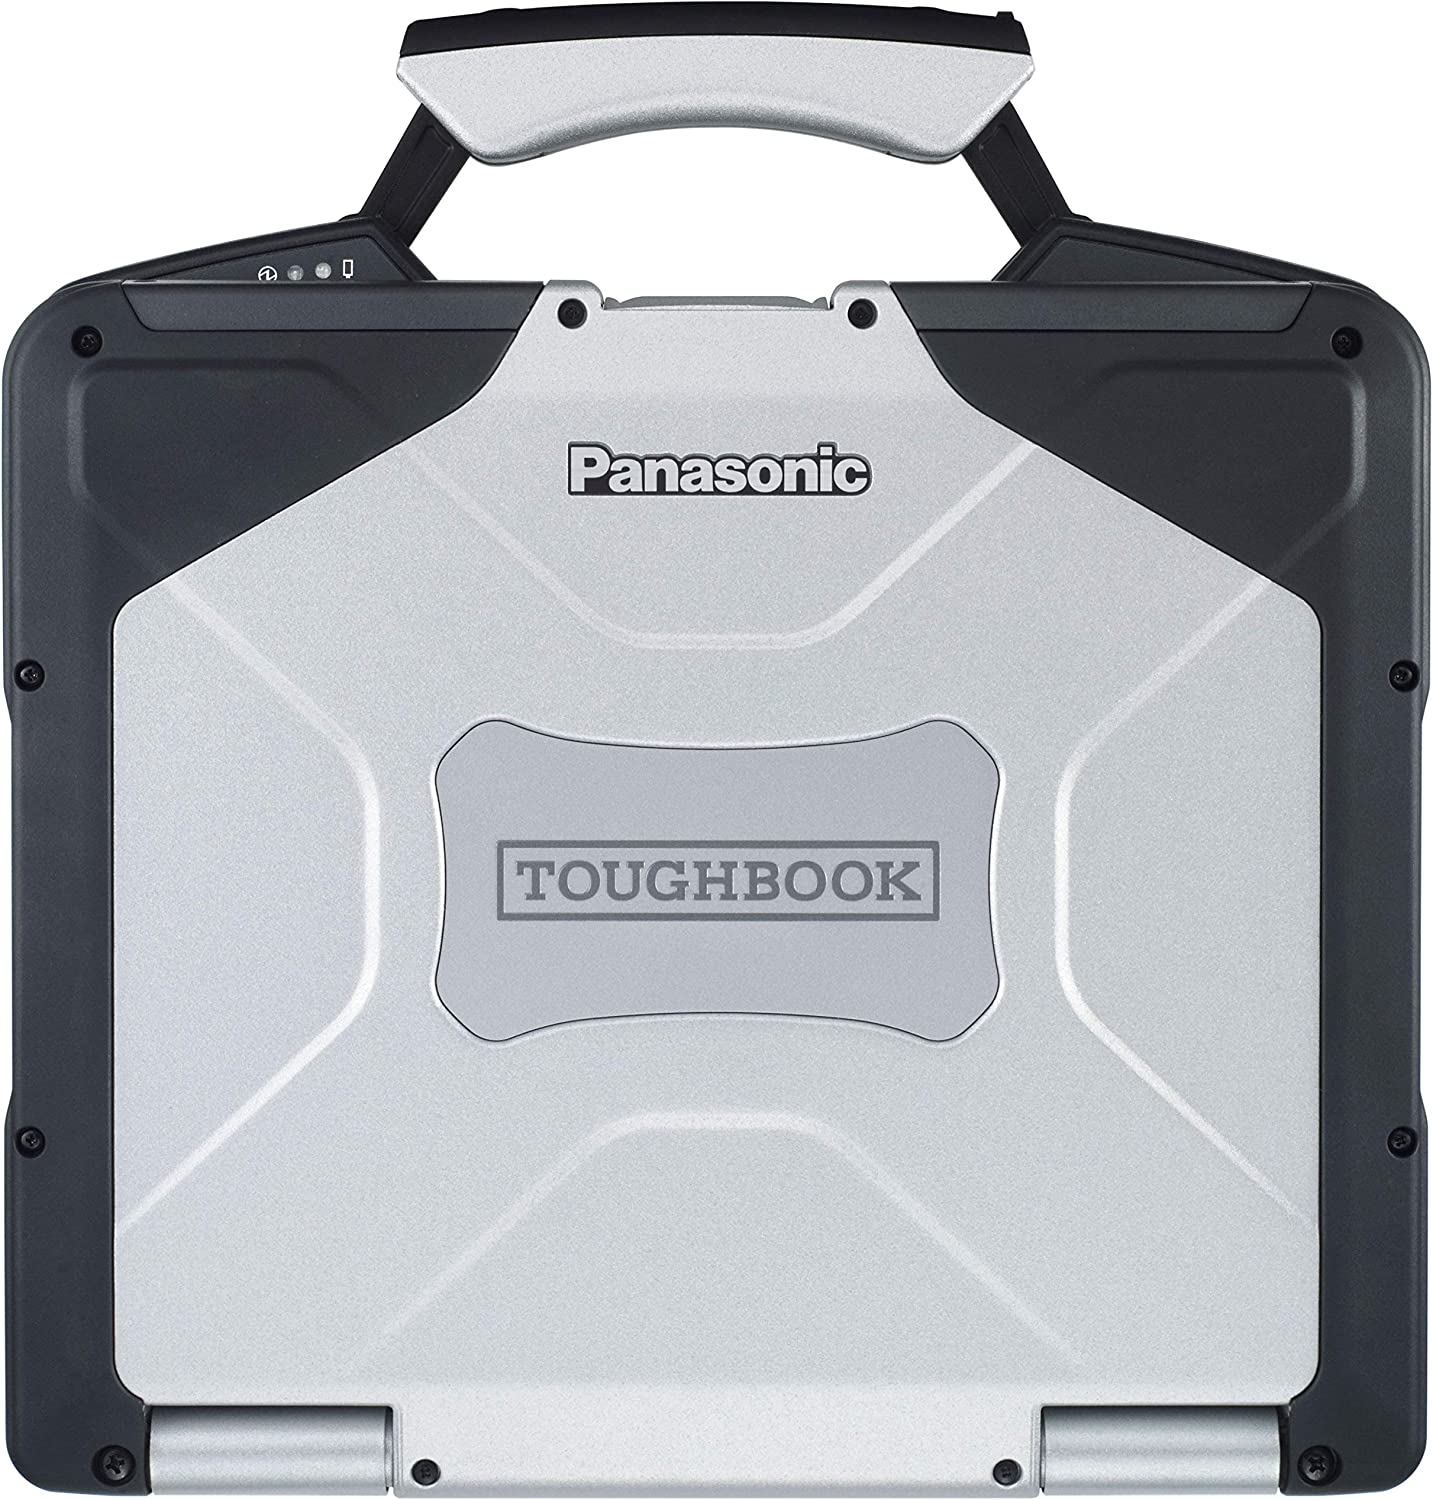 "Panasonic Toughbook CF-31, Intel Core i5 3rd Gen, 13.1"" XGA Touchscreen, 8GB RAM, 240GB SSD, Windows 10 Pro, Wifi, Bluetooth (Renewed)"